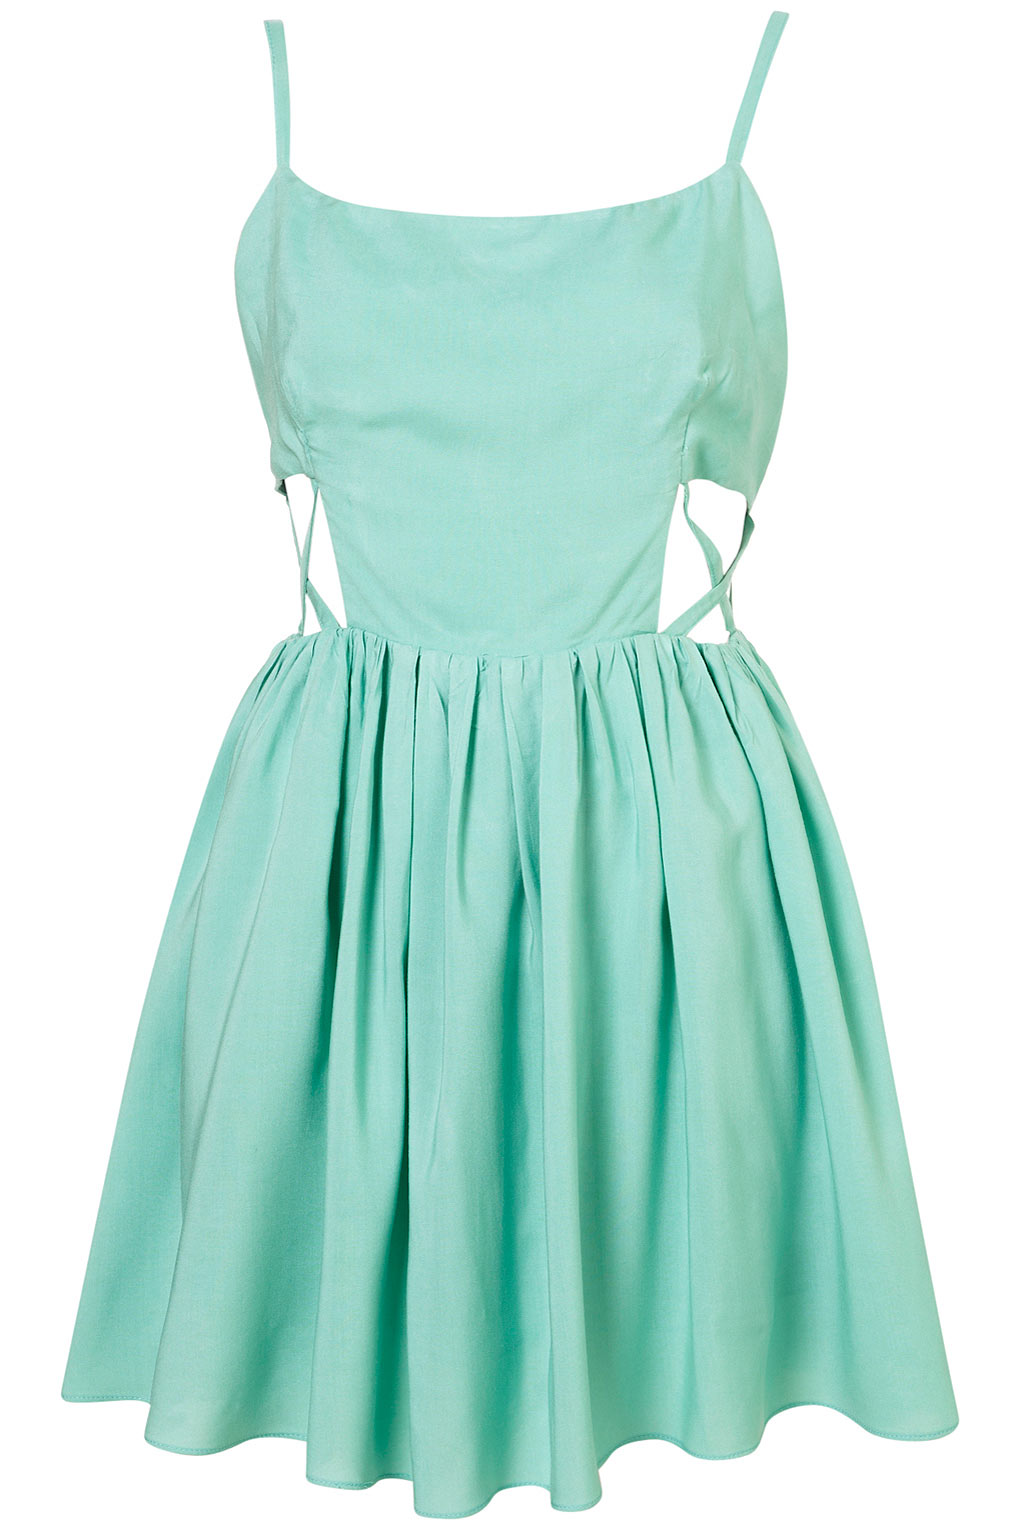 Topshop Green Melanie Dress By Goldie